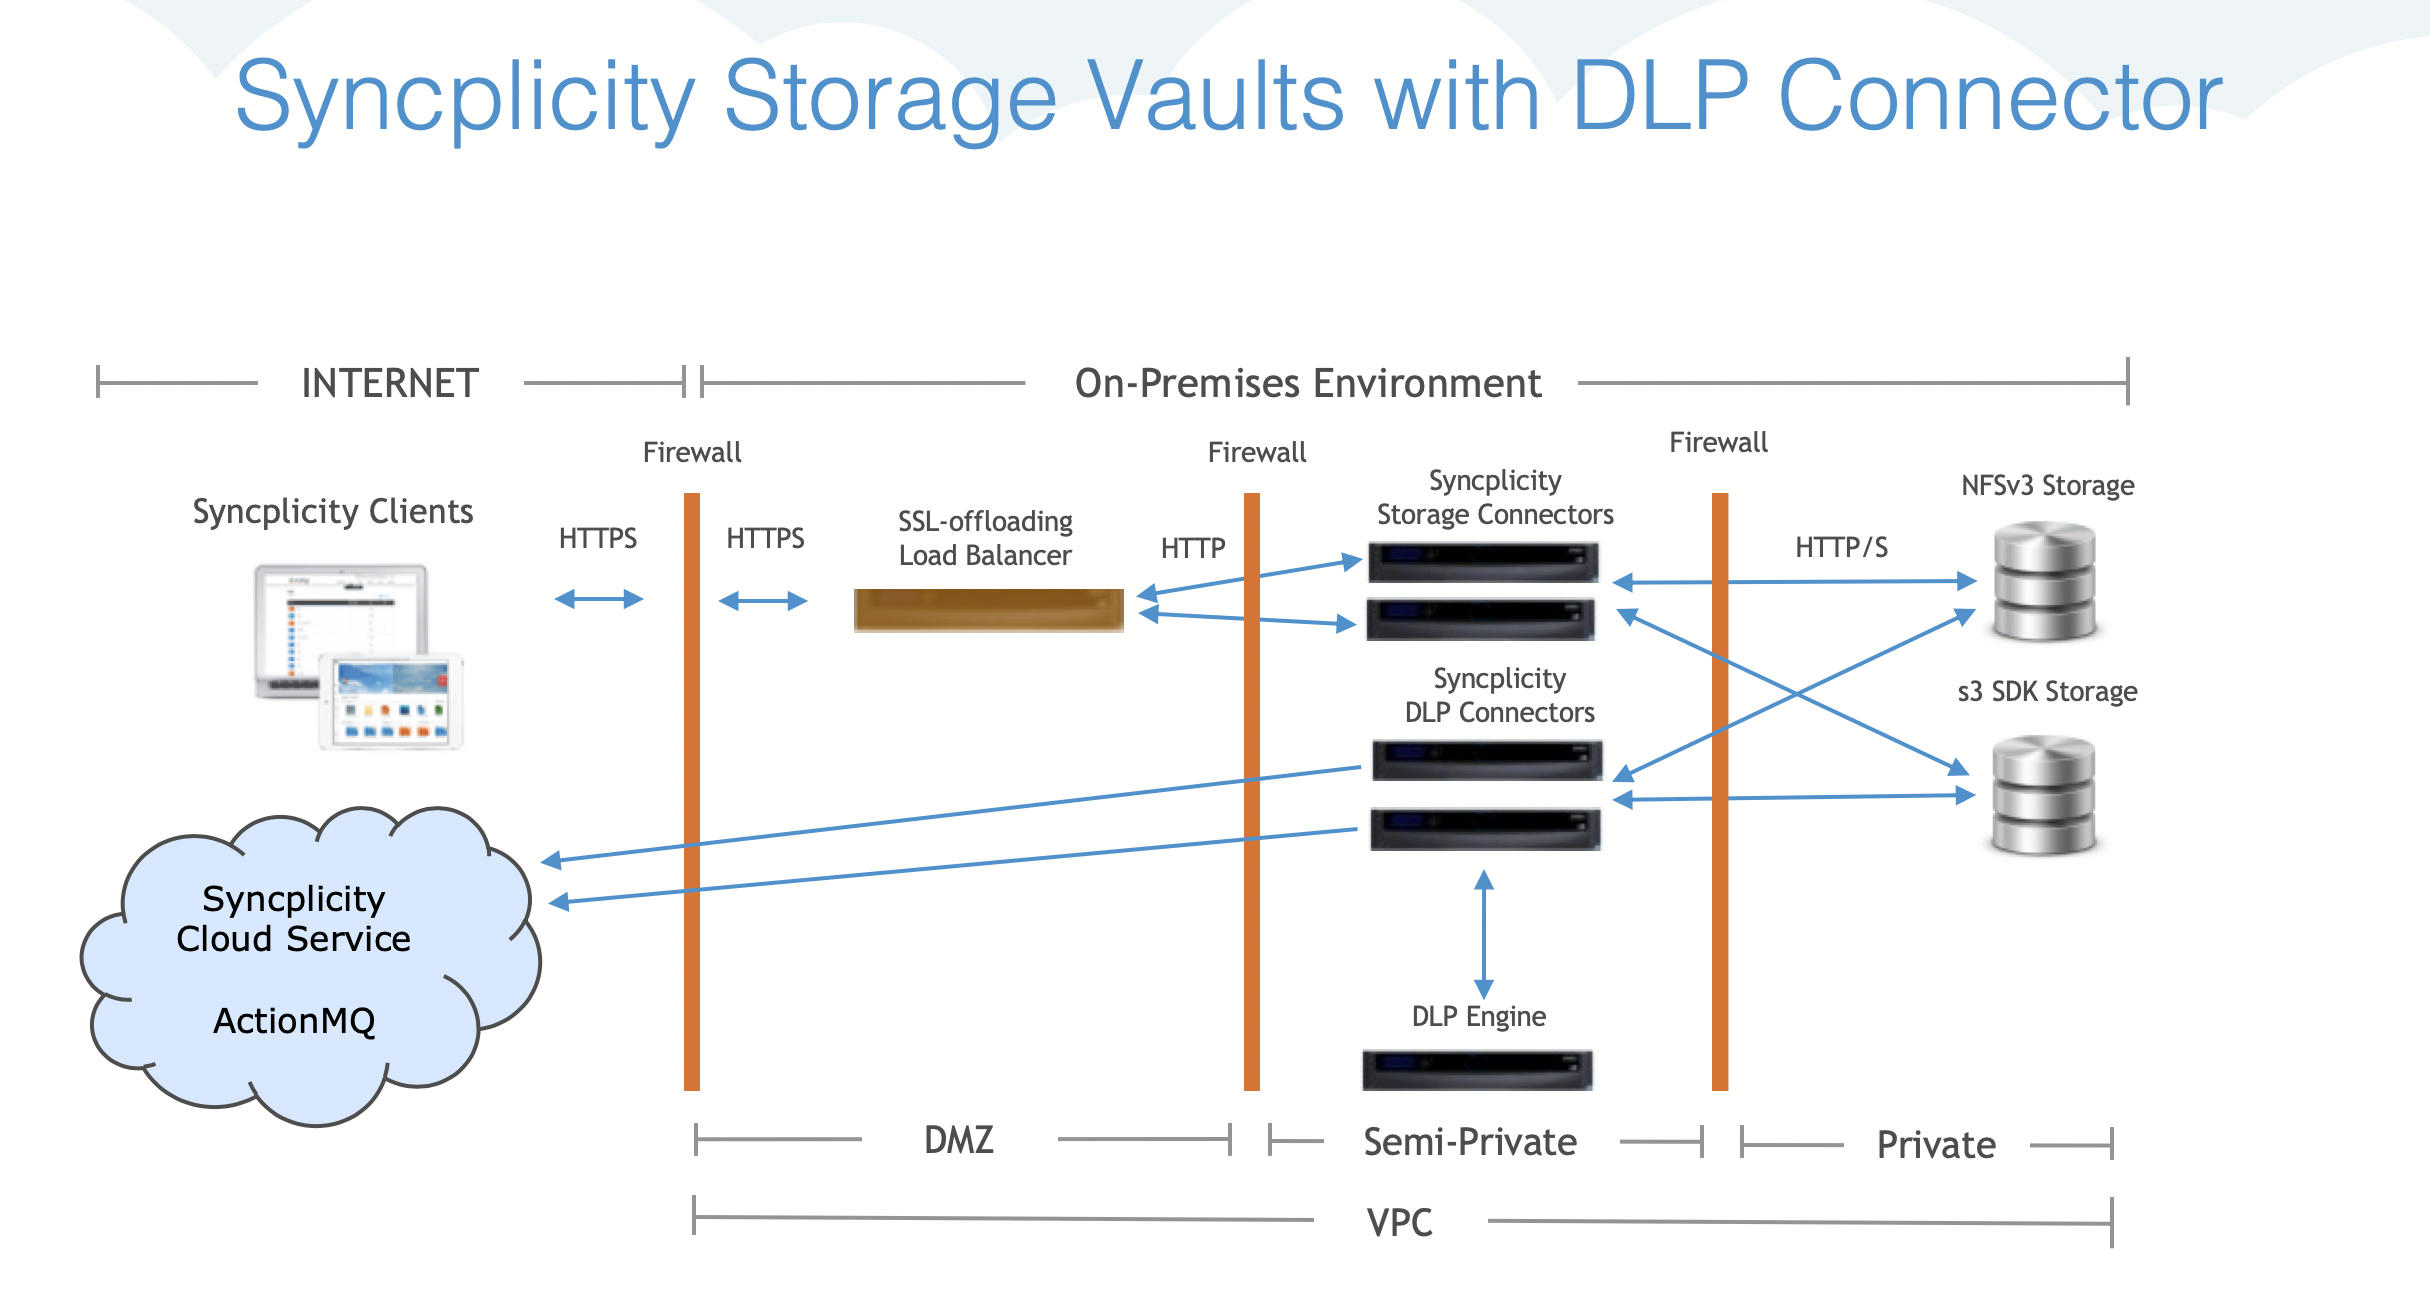 DLP_Connector_diagram.png